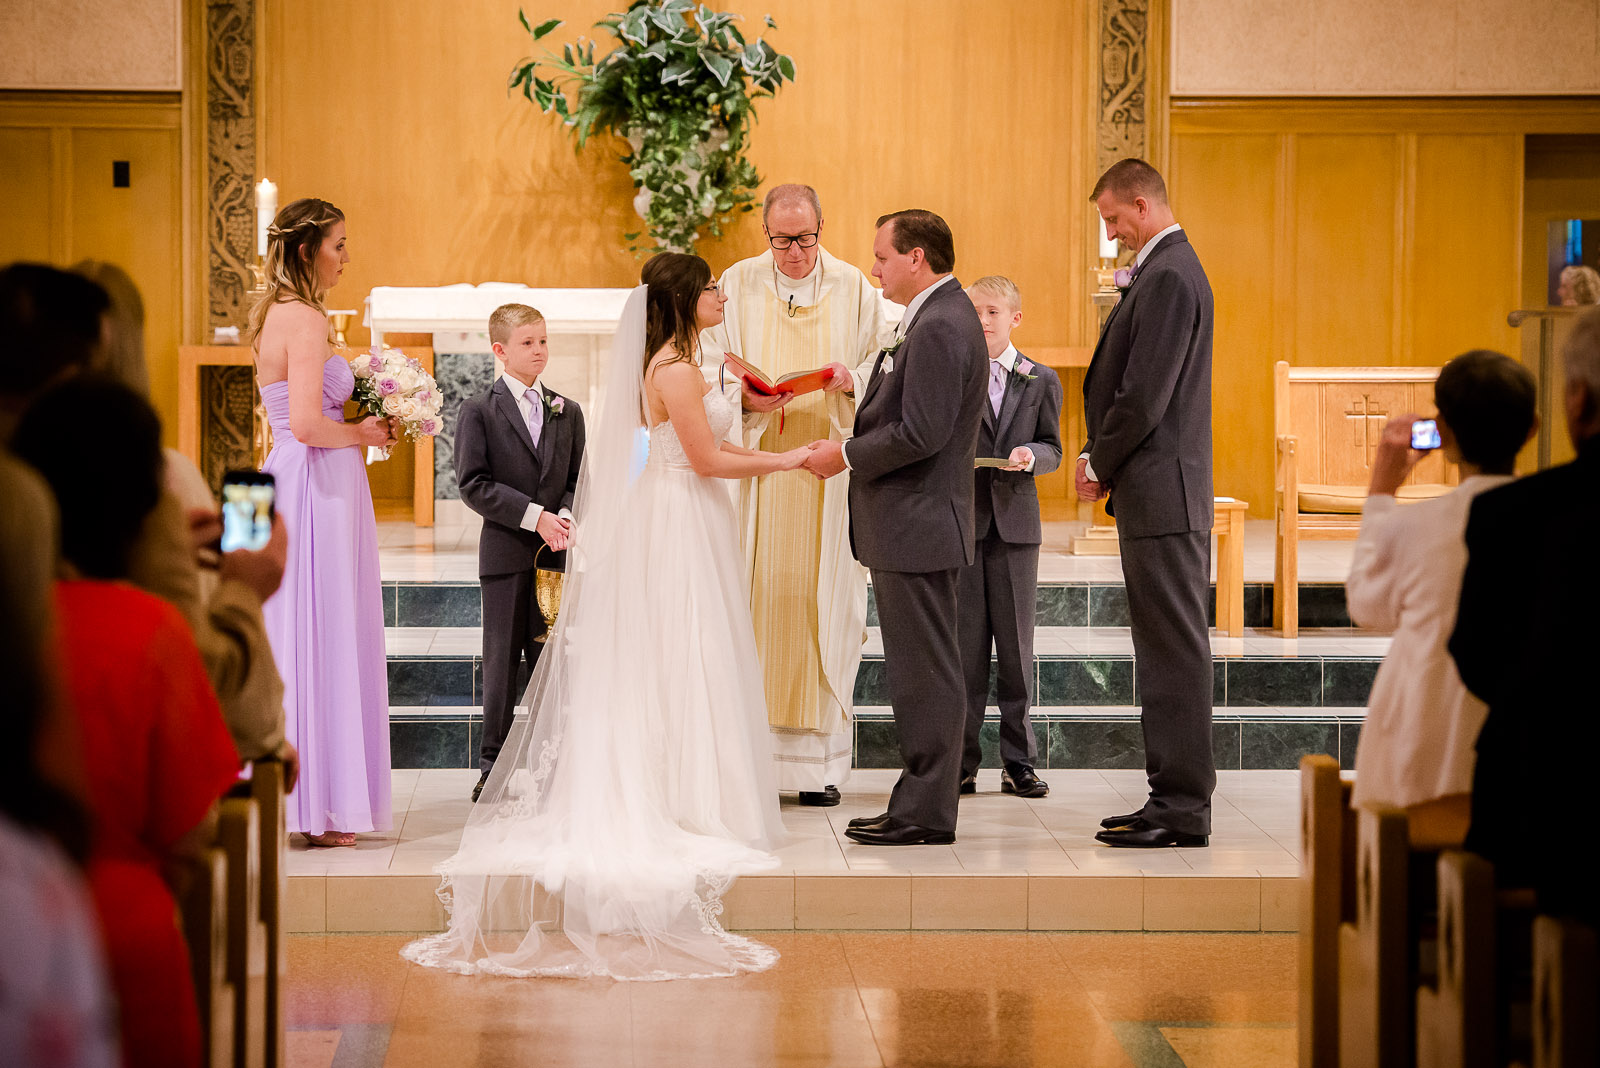 Eric_and_Christy_Photography_Blog_Julie_Adam_Wedding-7